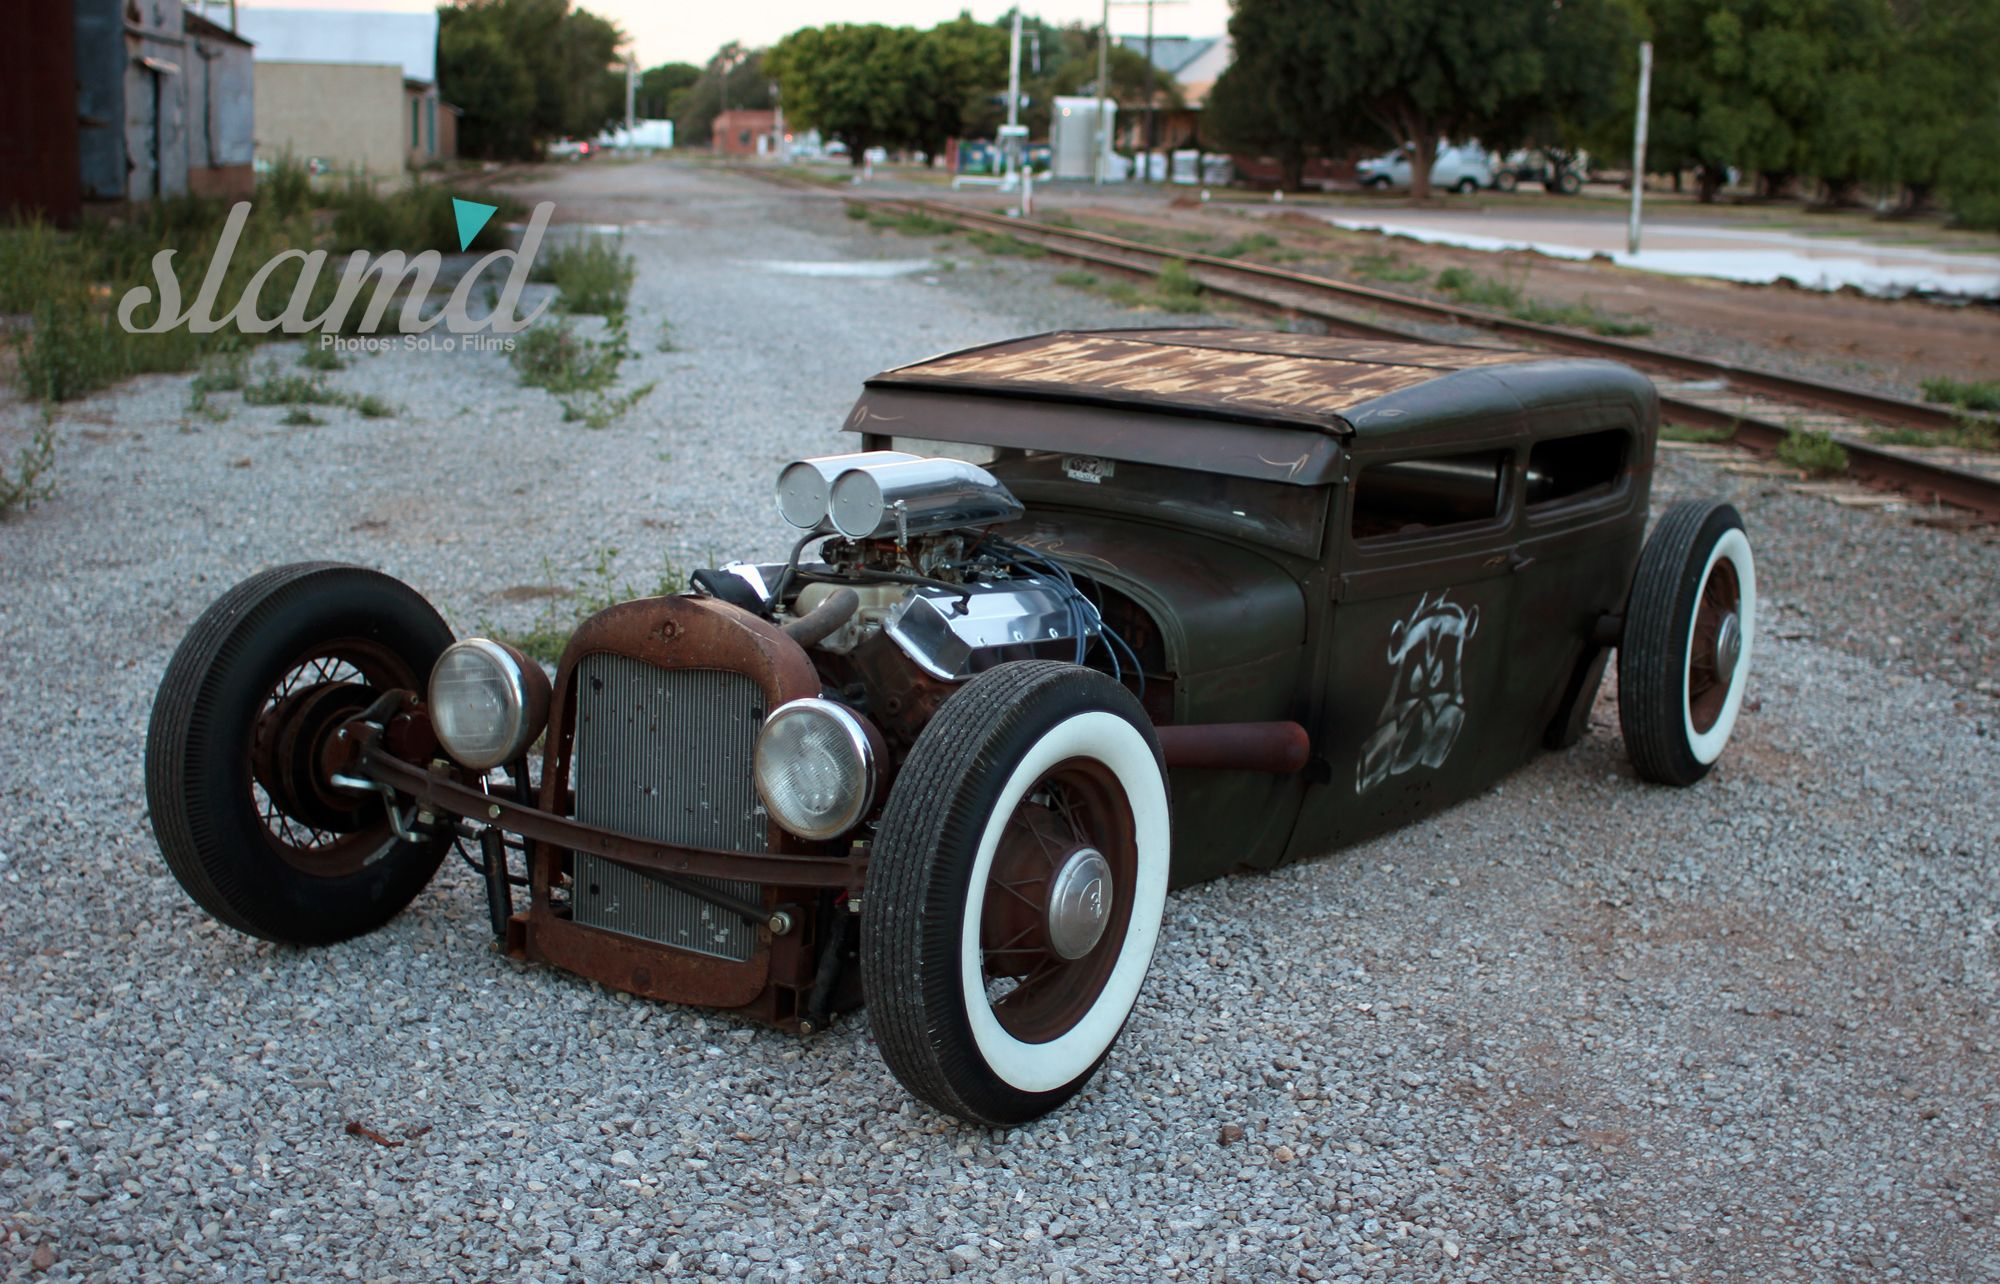 SkunkRat: The Skunkwerx 1928 Ford Tudor Sedan | Slam\'d Mag | Rusty ...